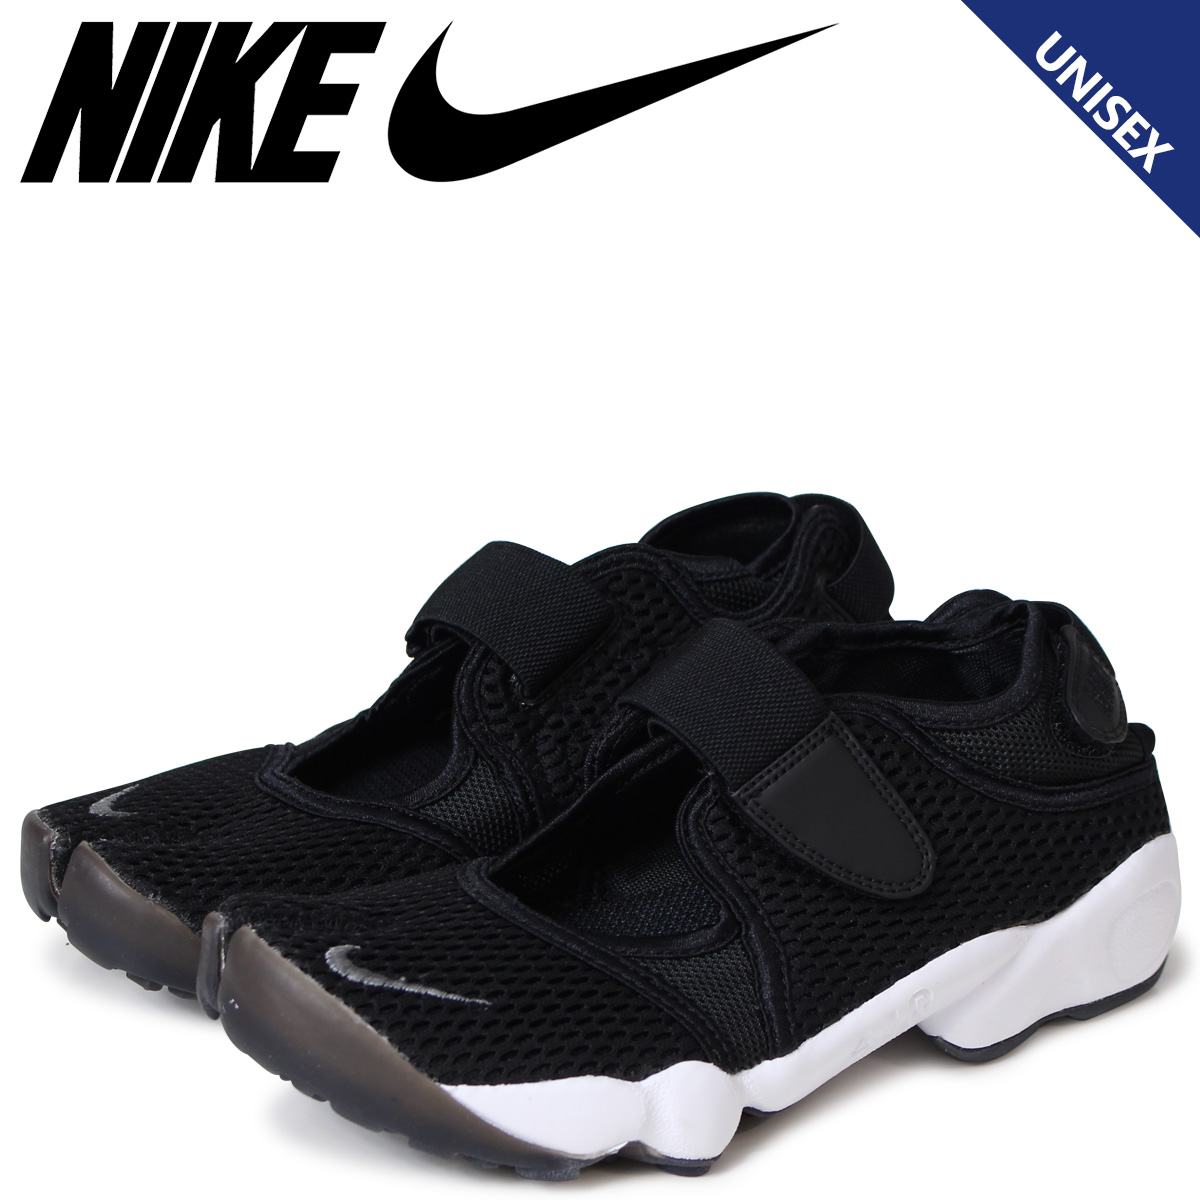 a7596390745 Sugar Online Shop  NIKE Nike airlift Lady s men sneakers WMNS AIR ...